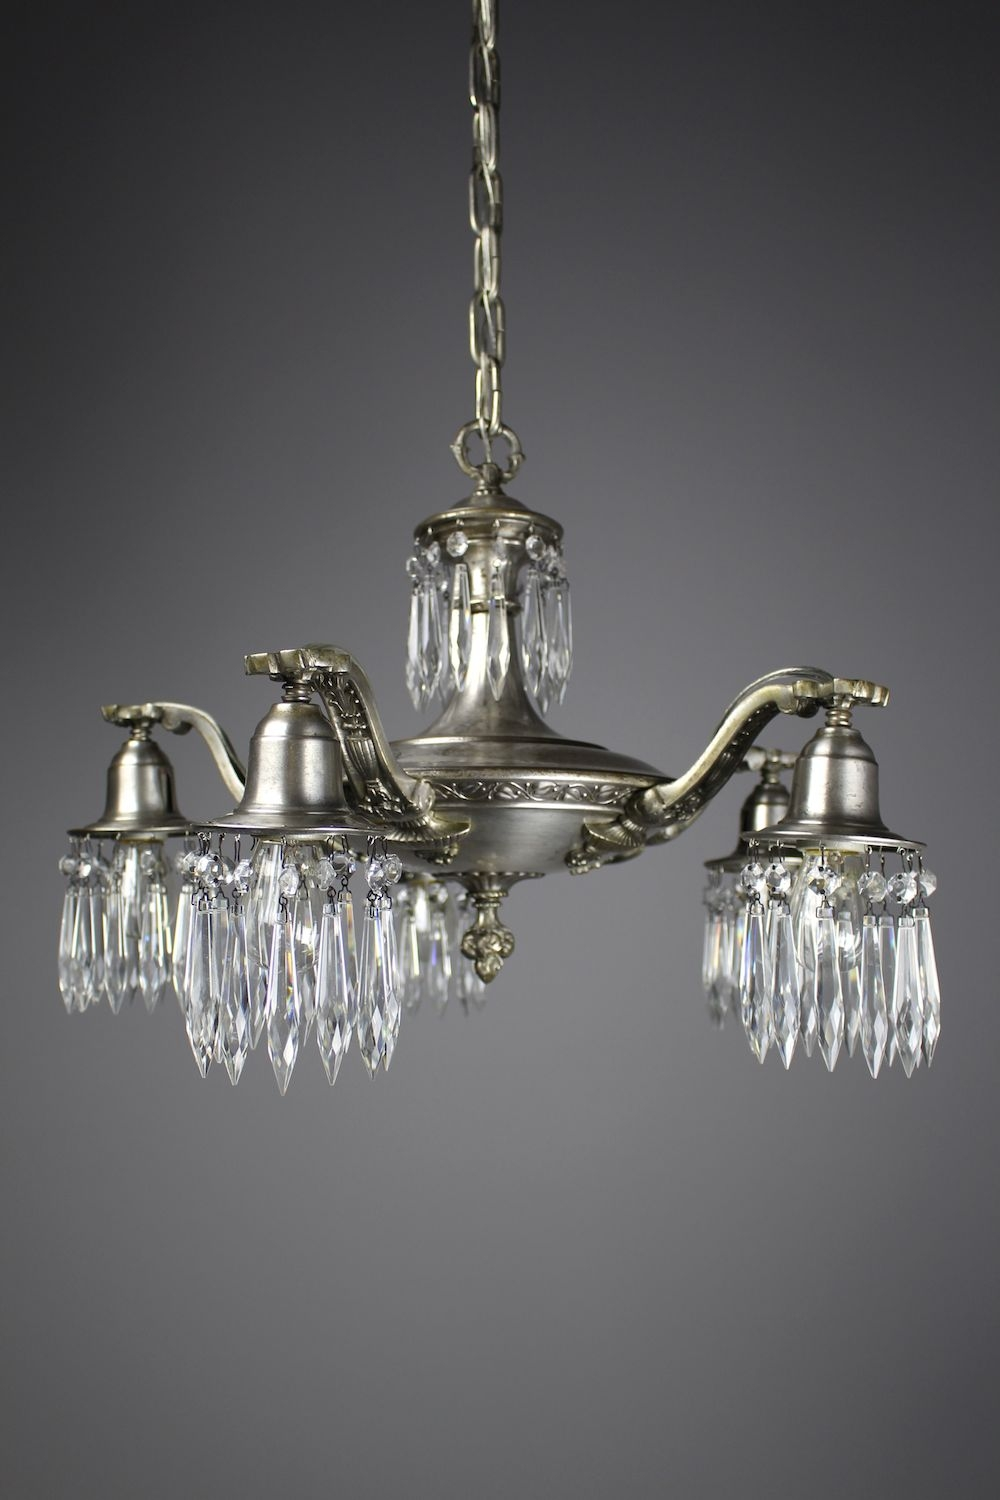 Edwardian Crystal Swag Chandelier 5 Light Regarding Edwardian Chandelier (Image 9 of 15)